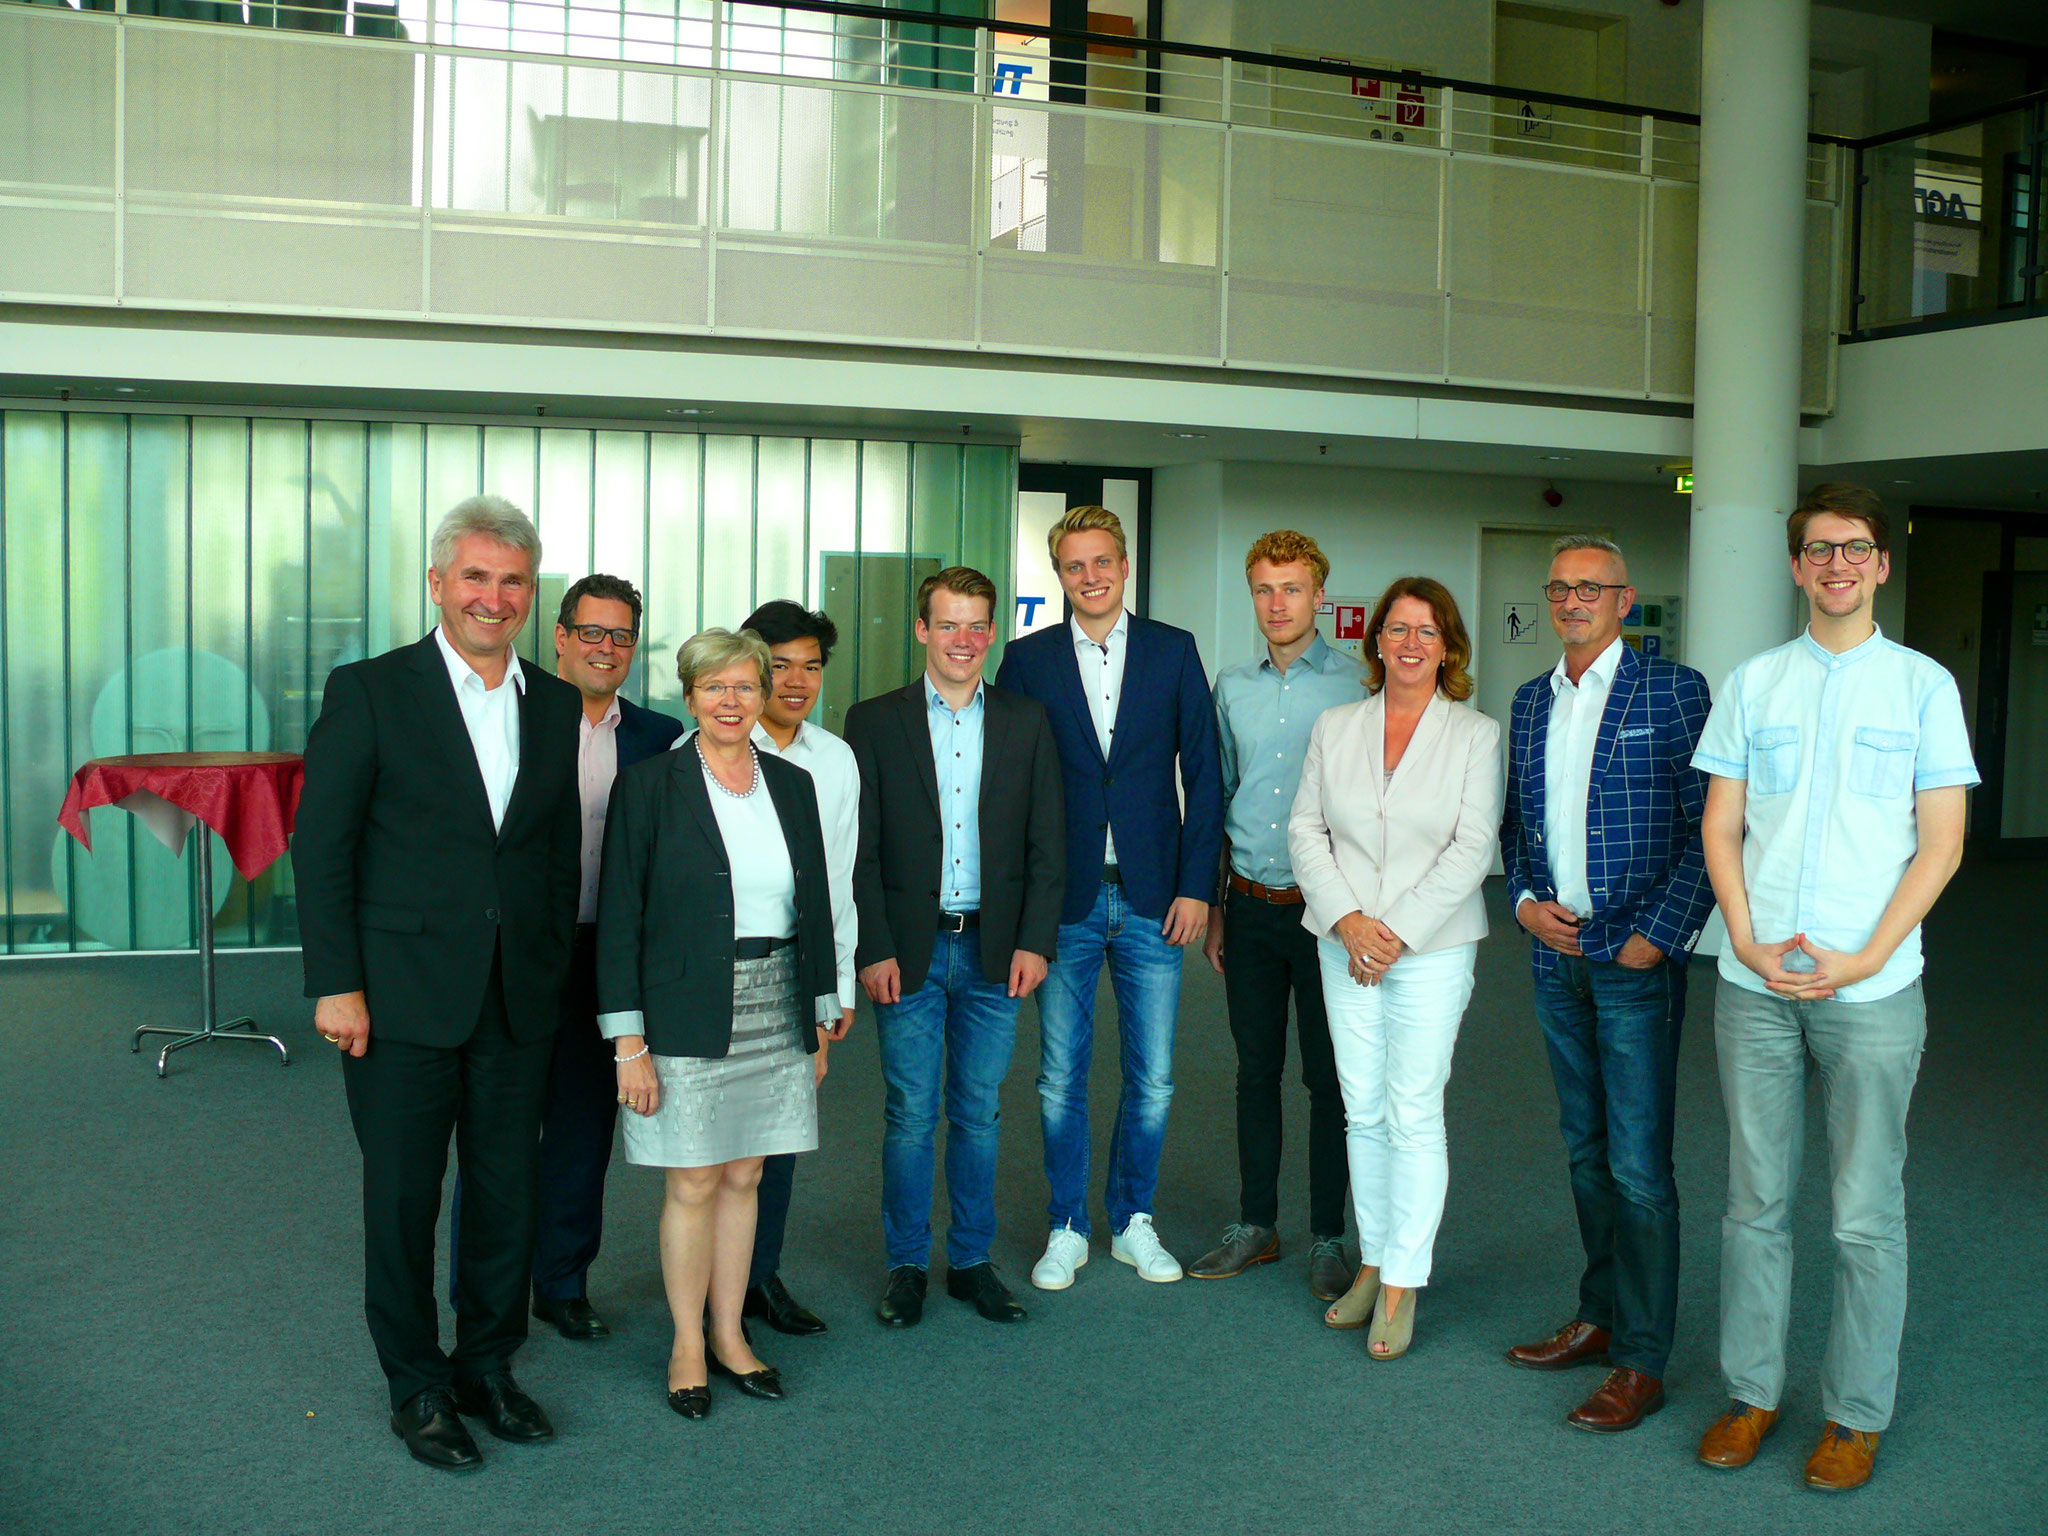 Besuch mit Minister Prof. Pinkwart bei Streetscouter